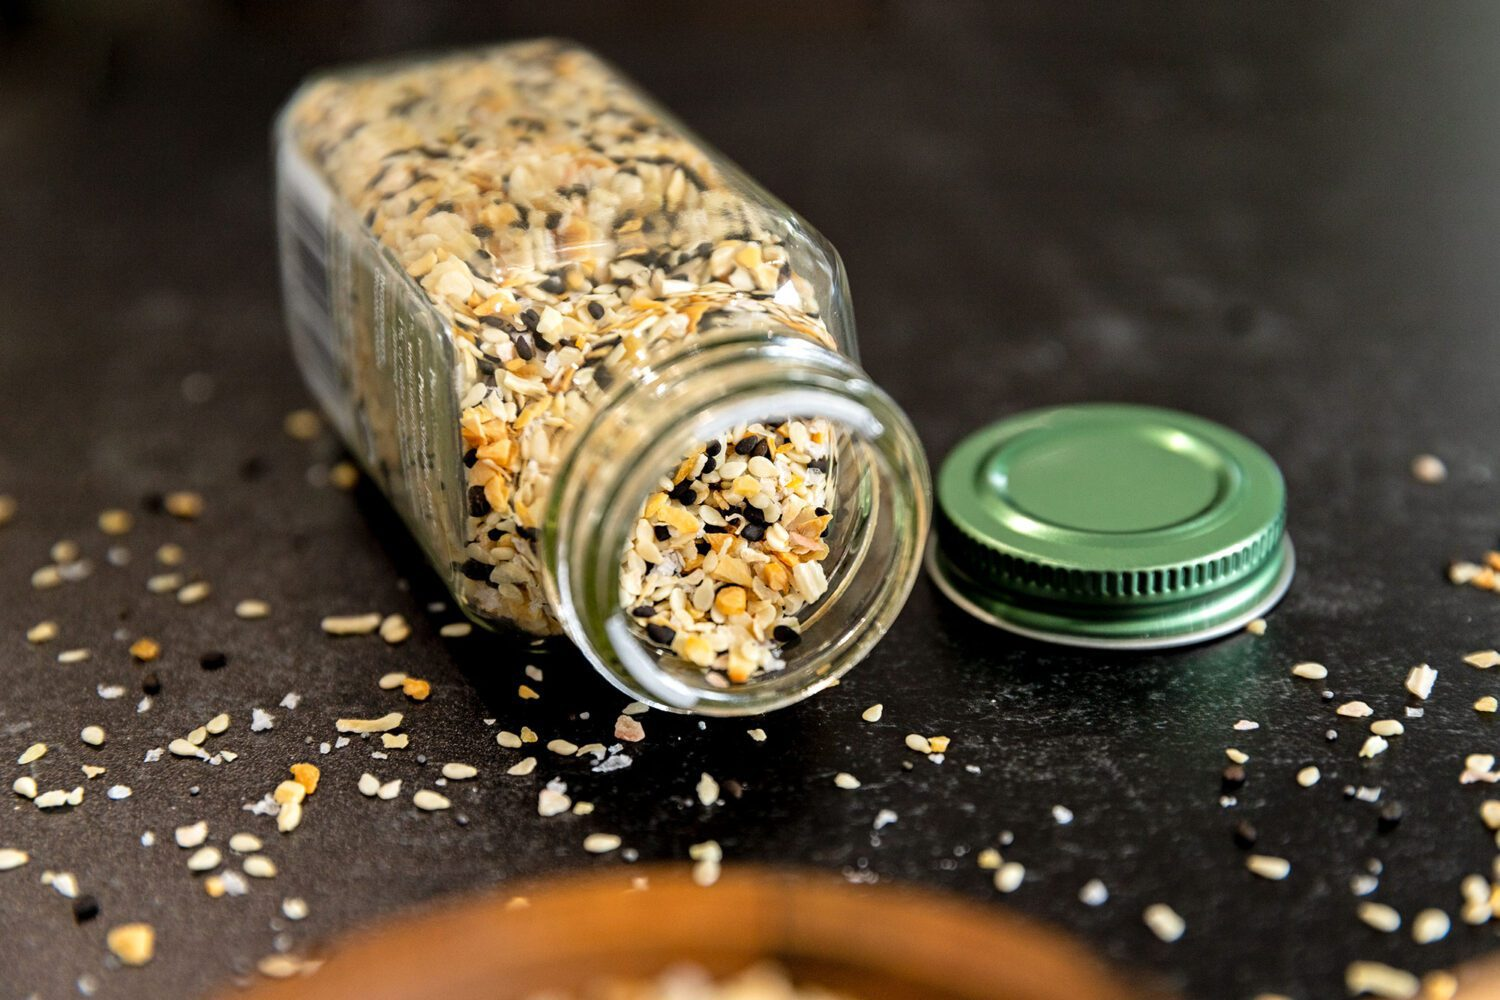 spice jar tipped over